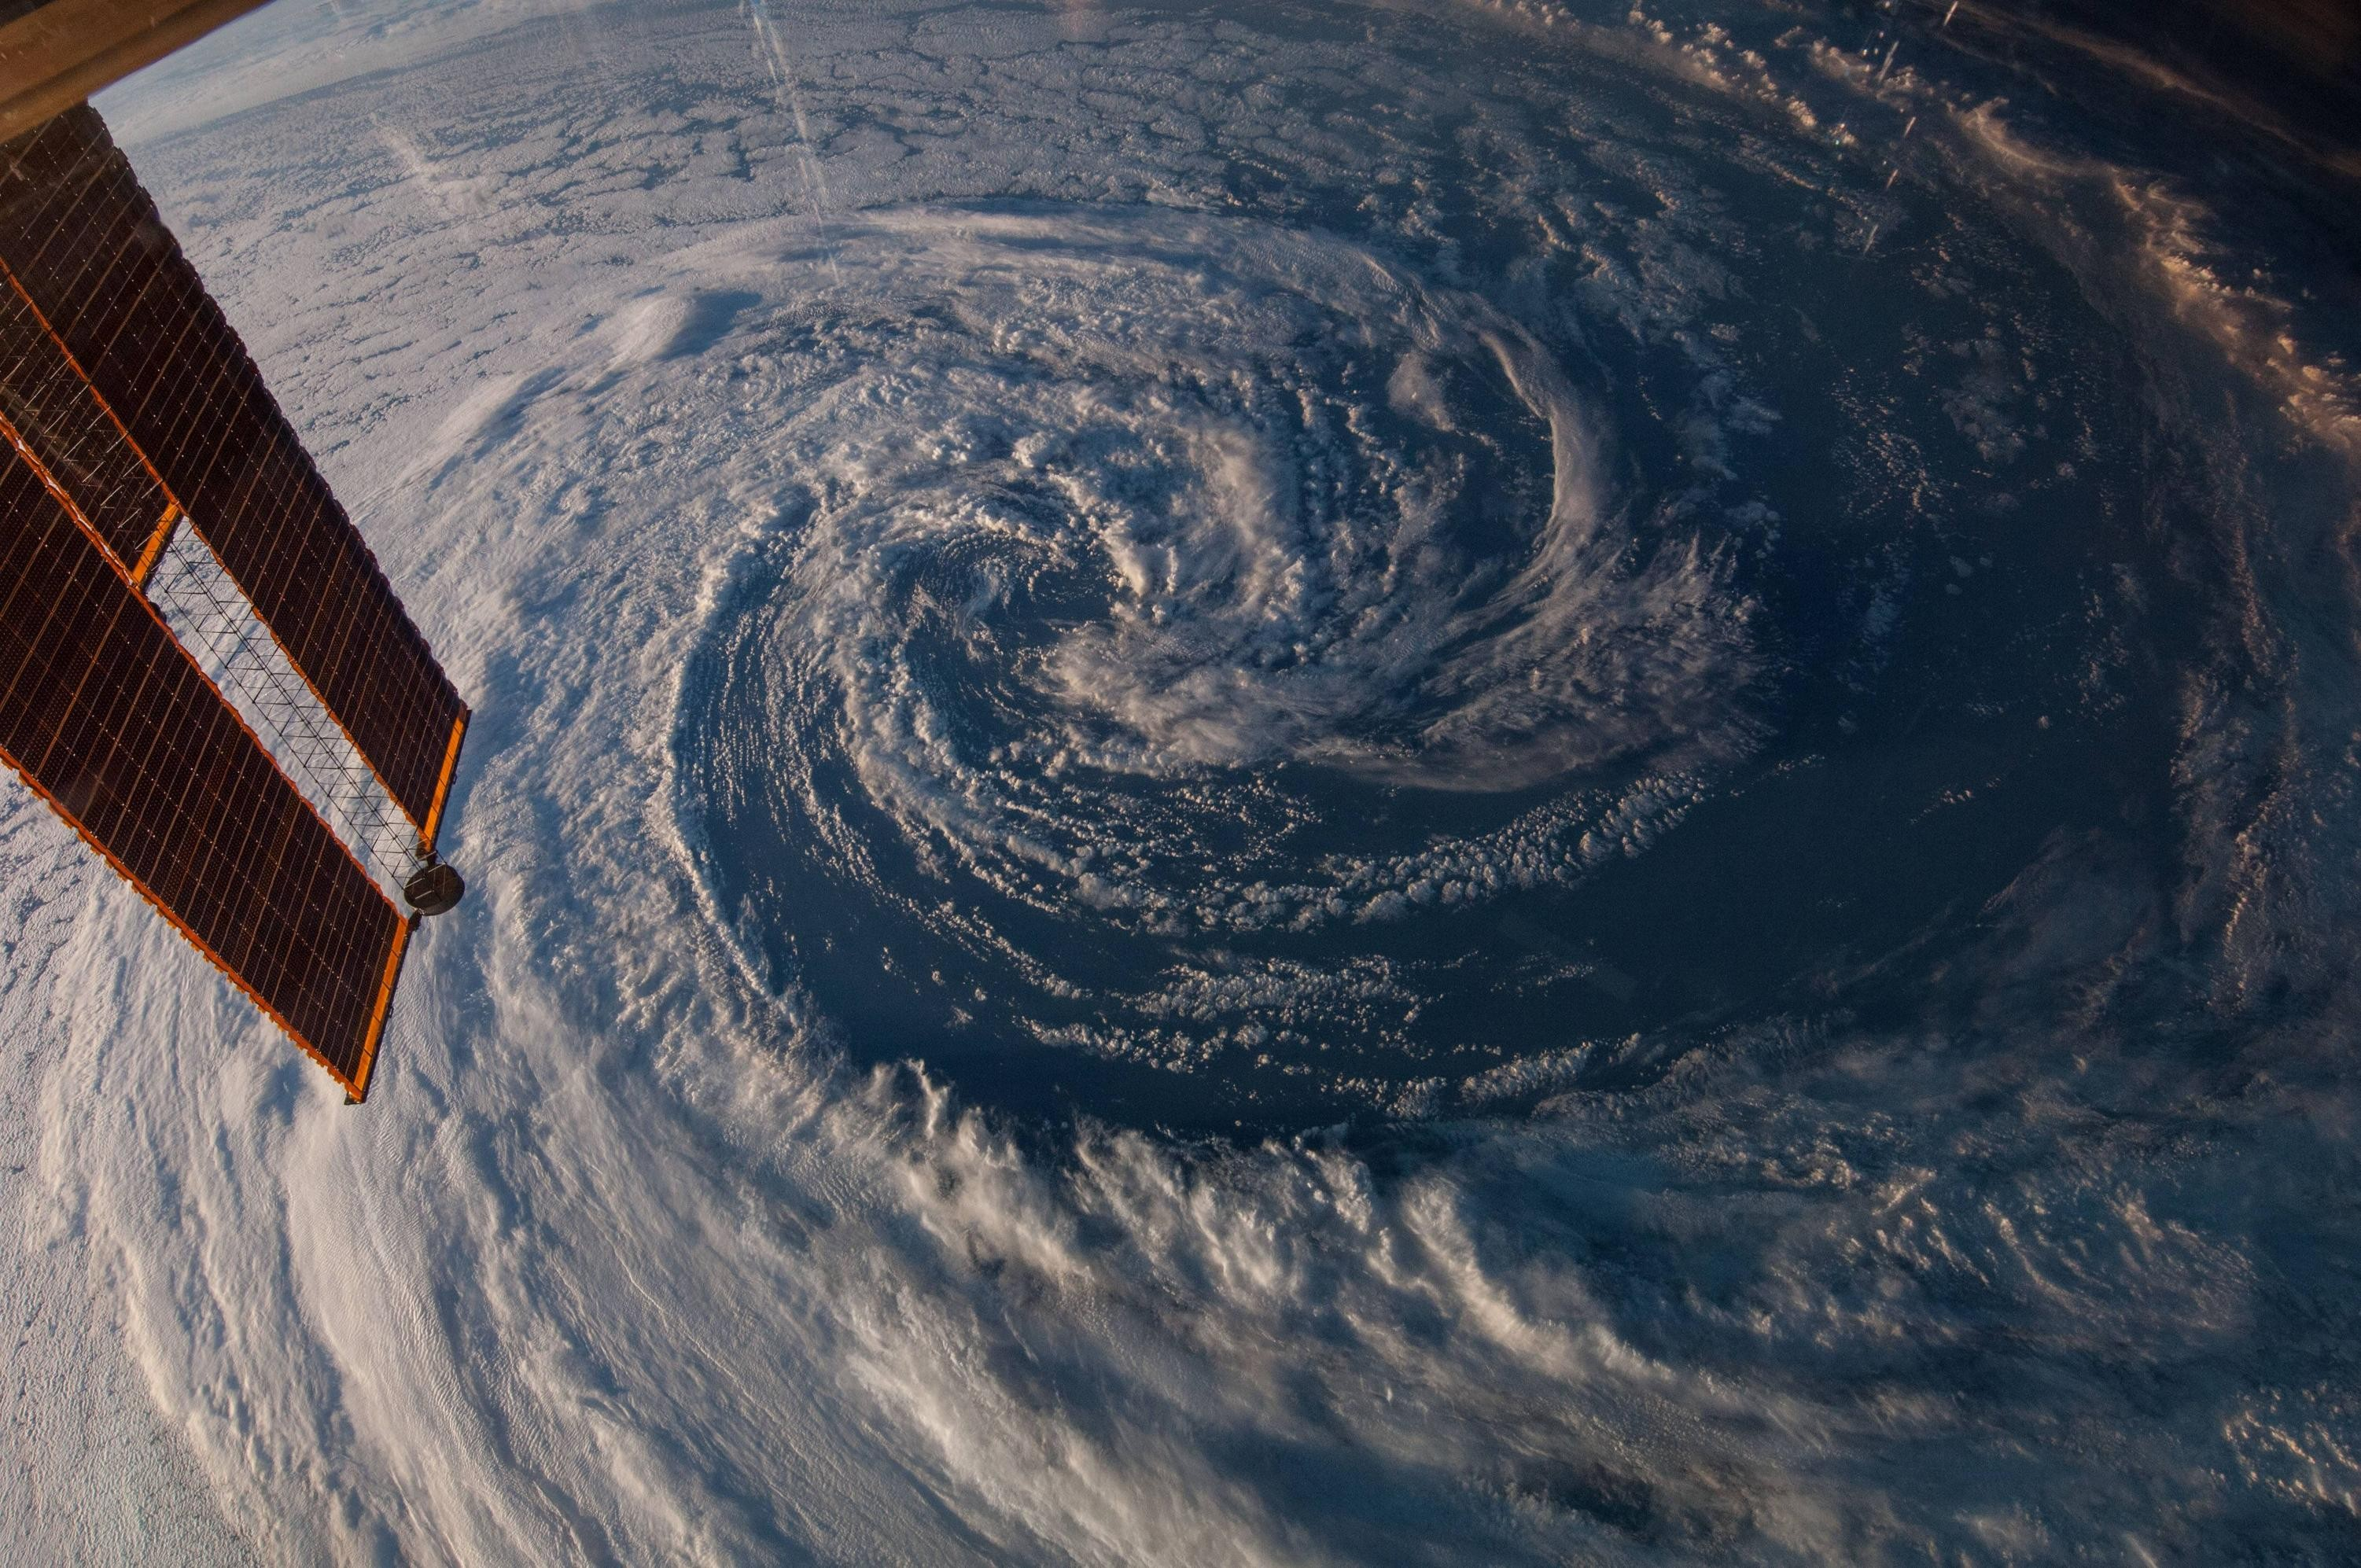 General 3002x1994 International Space Station storm NASA clouds space Earth hurricane aerial view